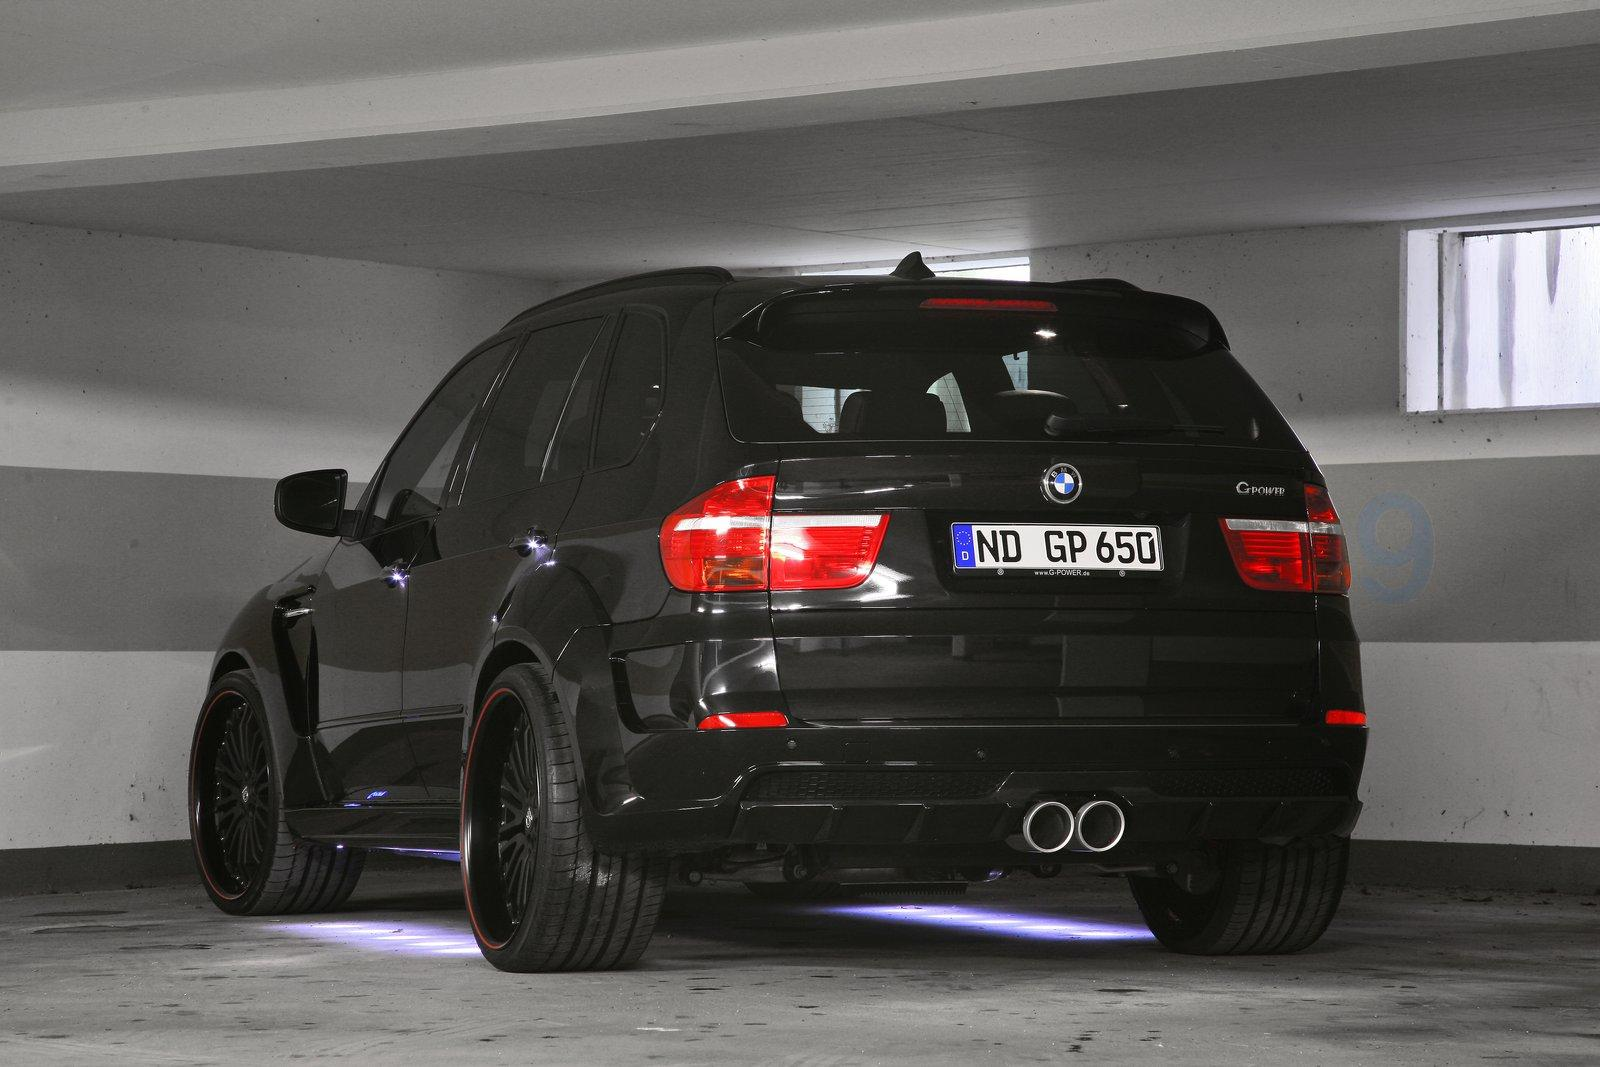 2010 Bmw X5 M Typhoon By G Power New Car Used Car Reviews